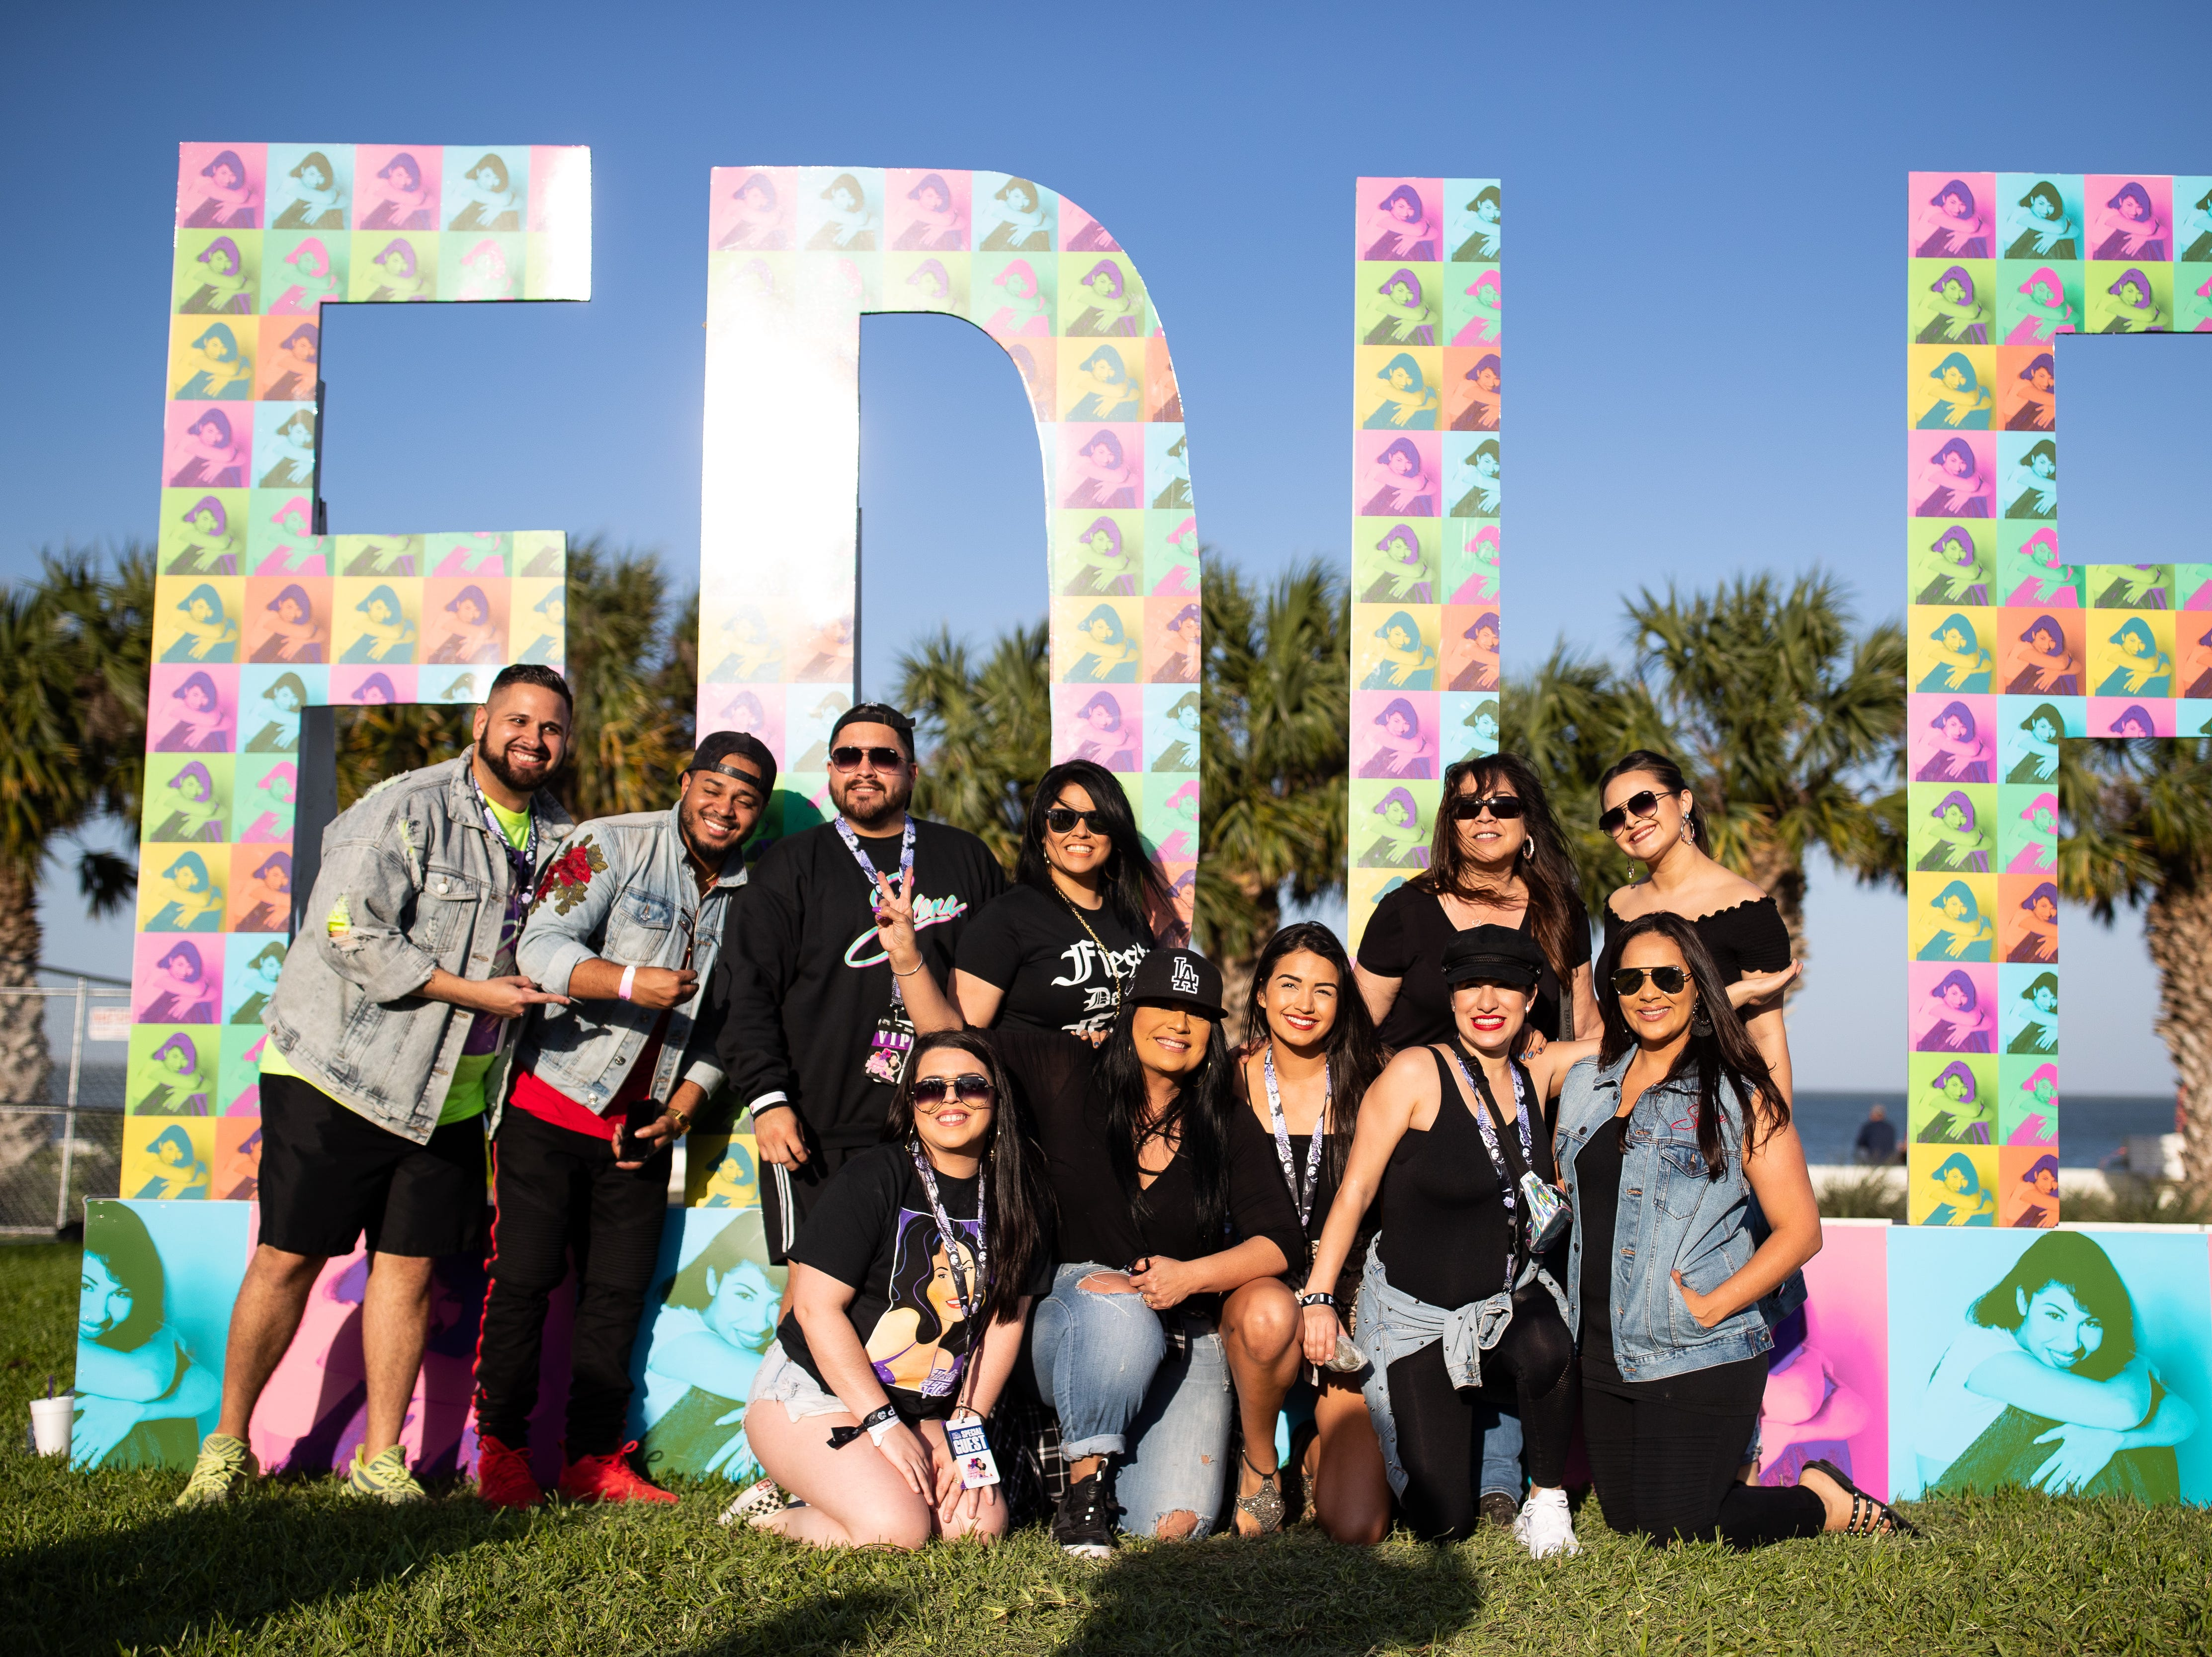 Suzette Quintanilla takes a photo with a group of people at the FDLF sign during the second day of Fiesta de la Flor on Saturday, April 13, 2019.